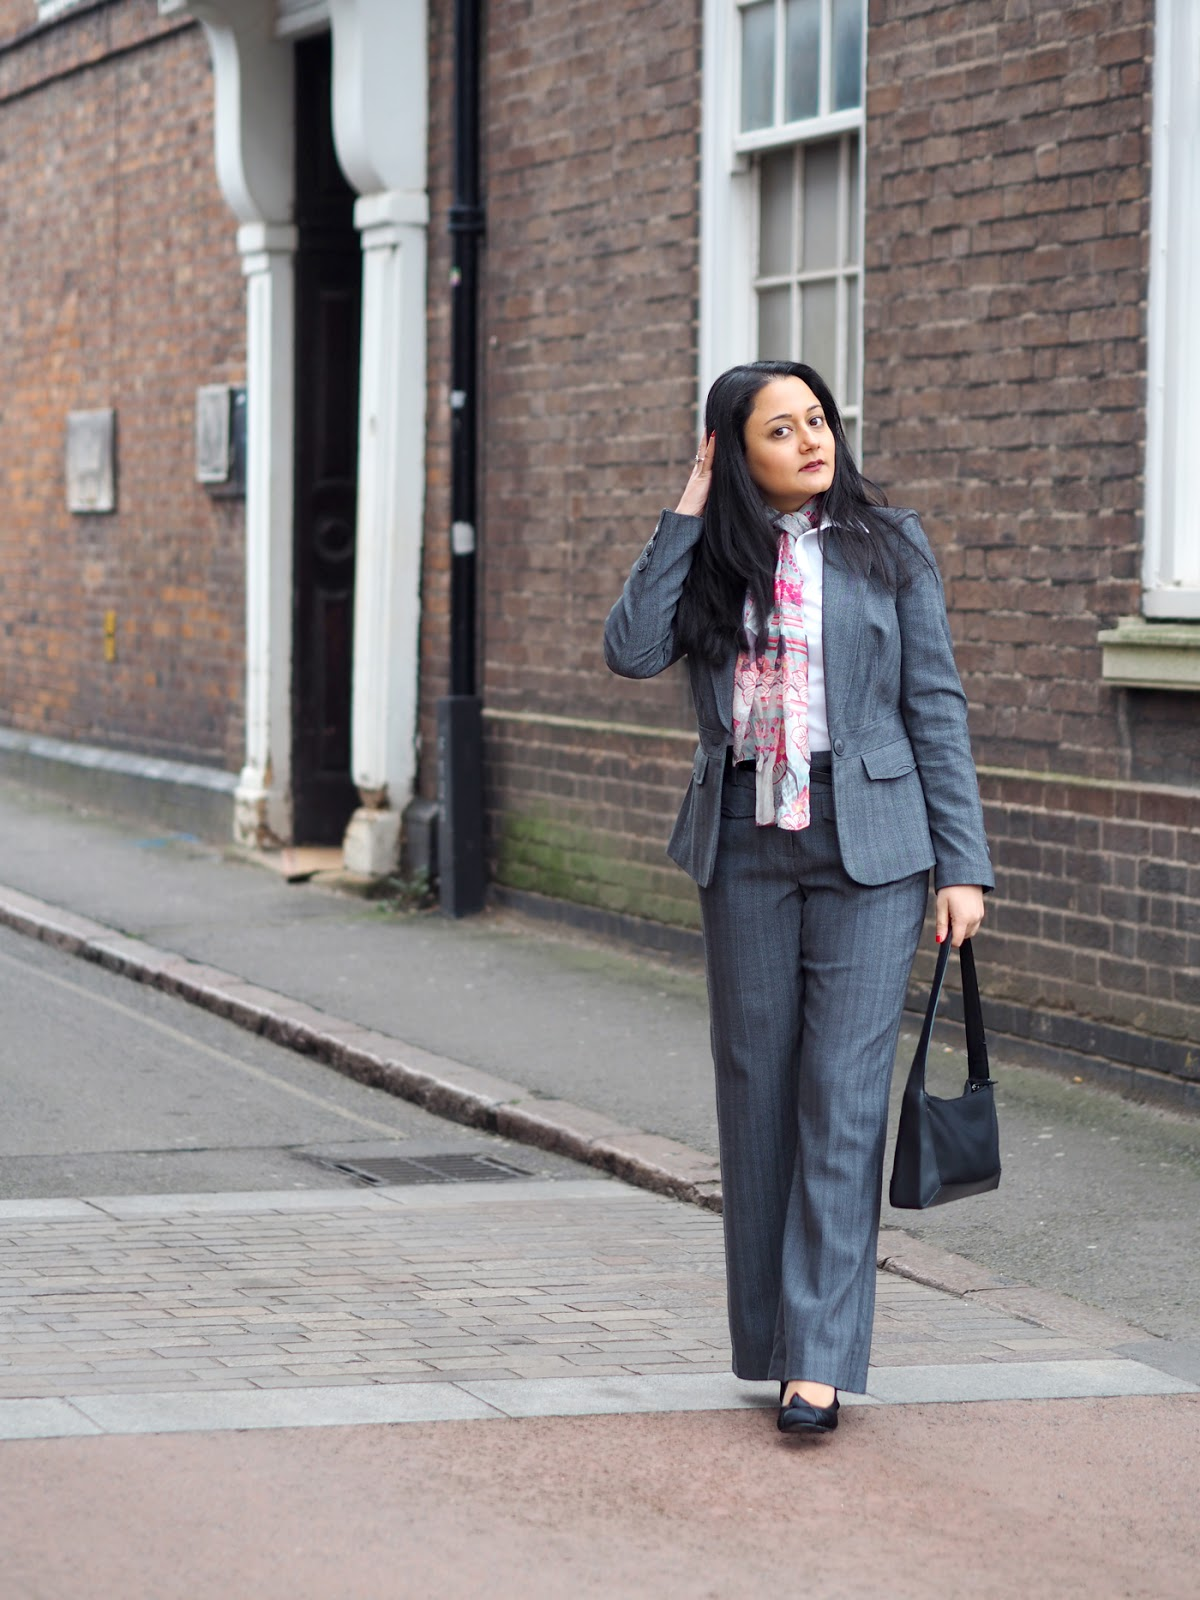 How to nail the trouser suit look